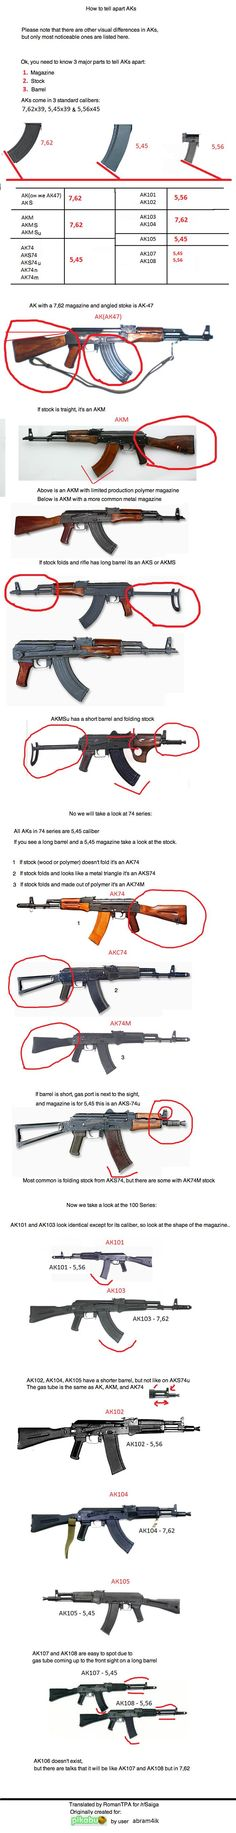 How to tell apart the AK's